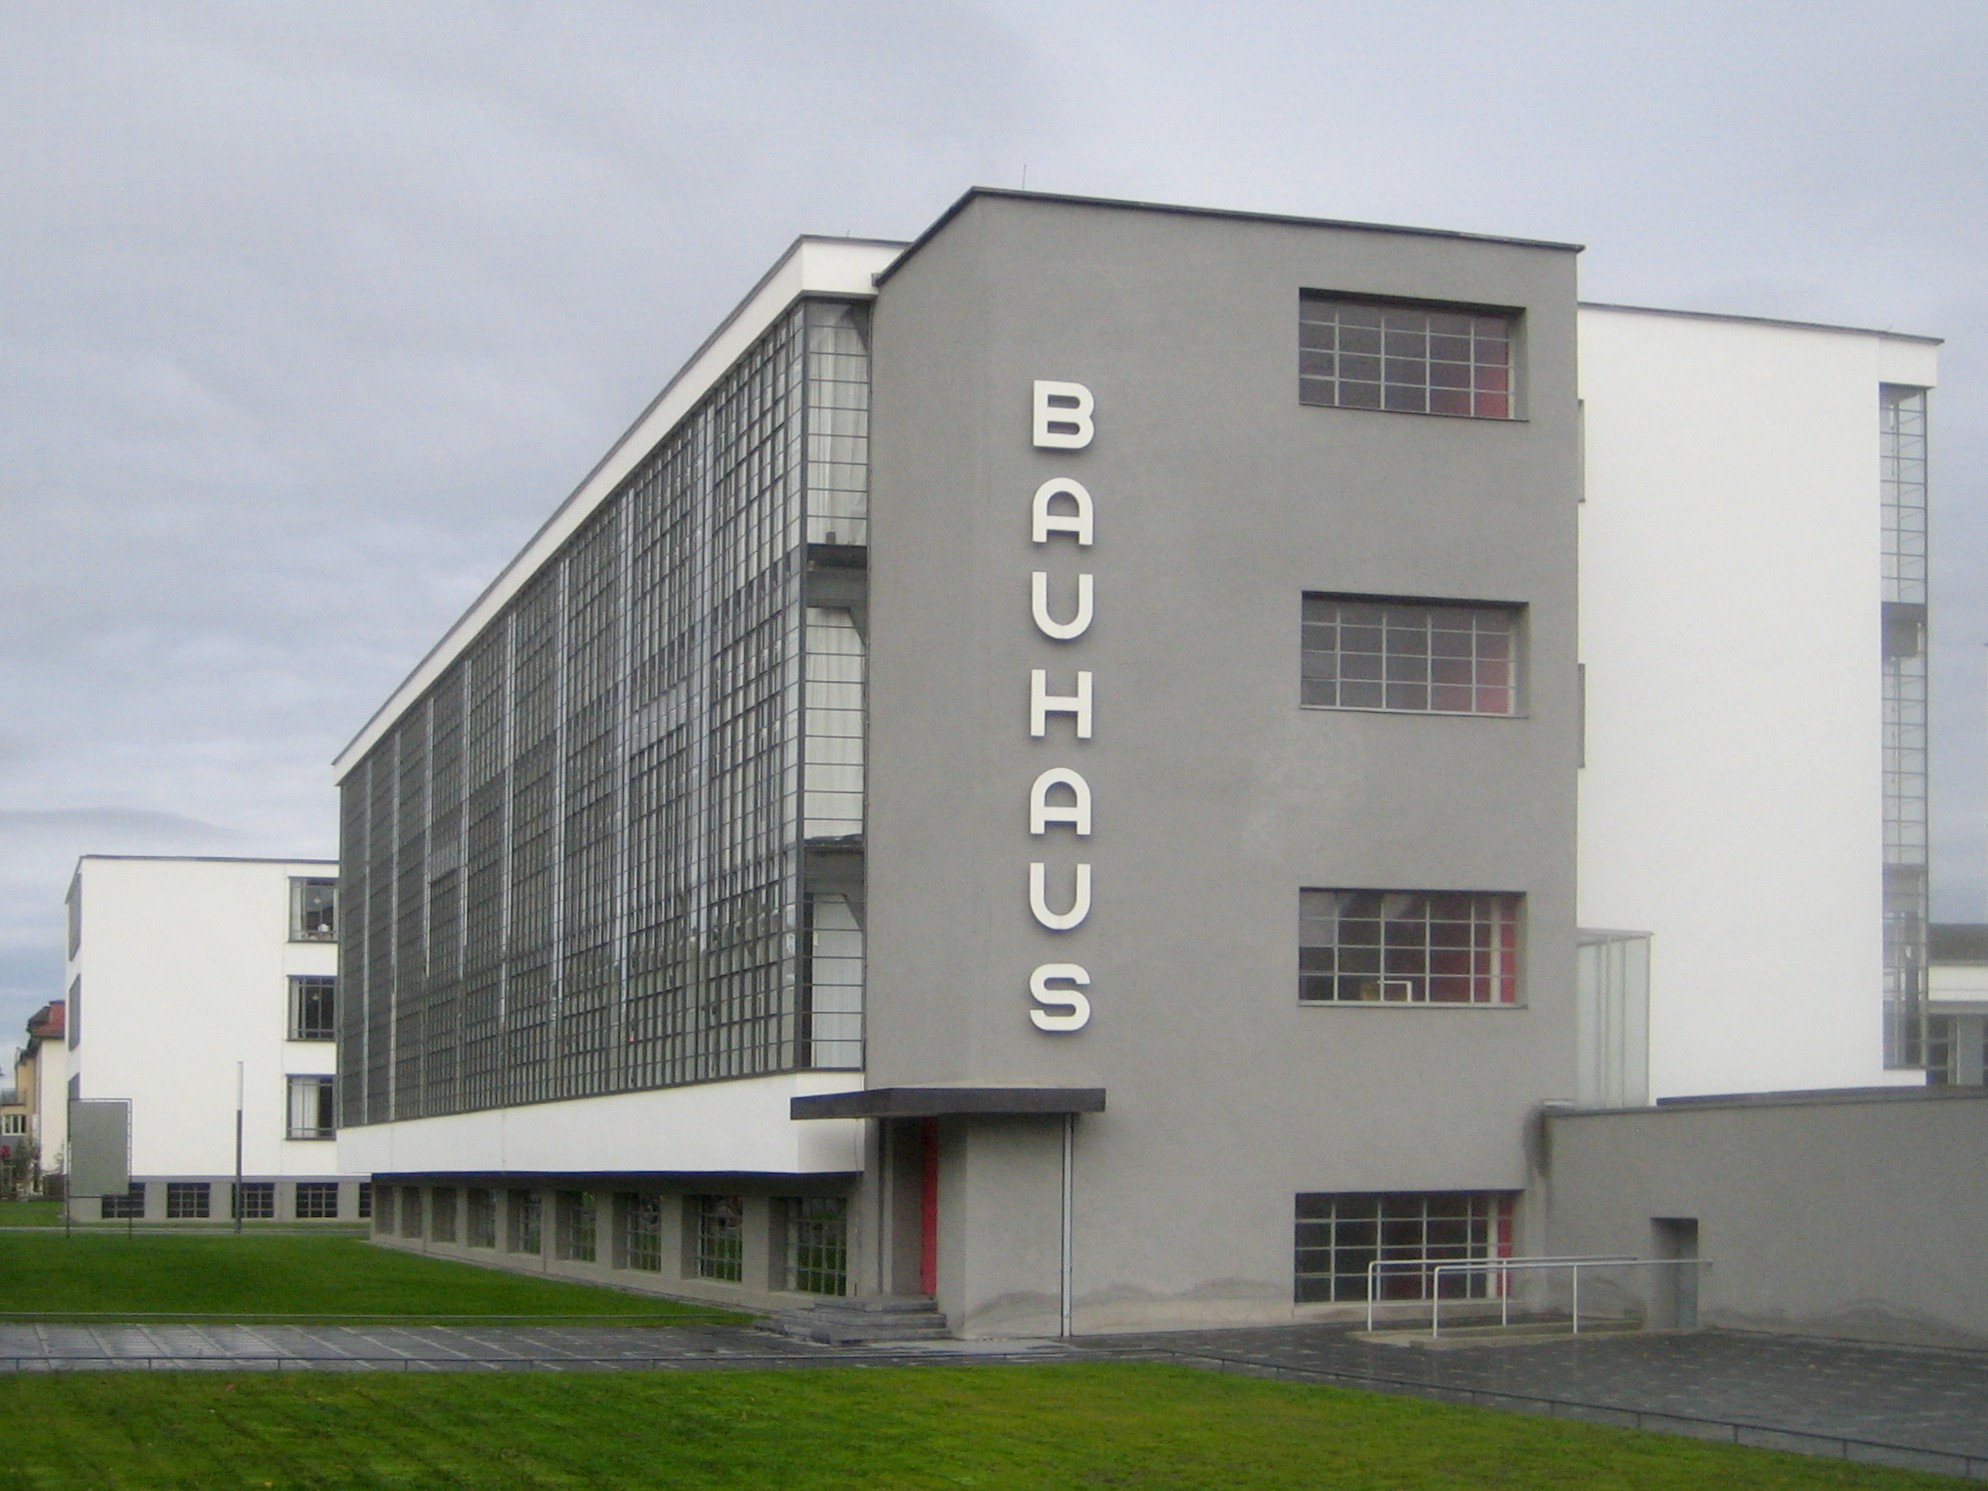 Bauhaus movement architecture the image for Architecture bauhaus